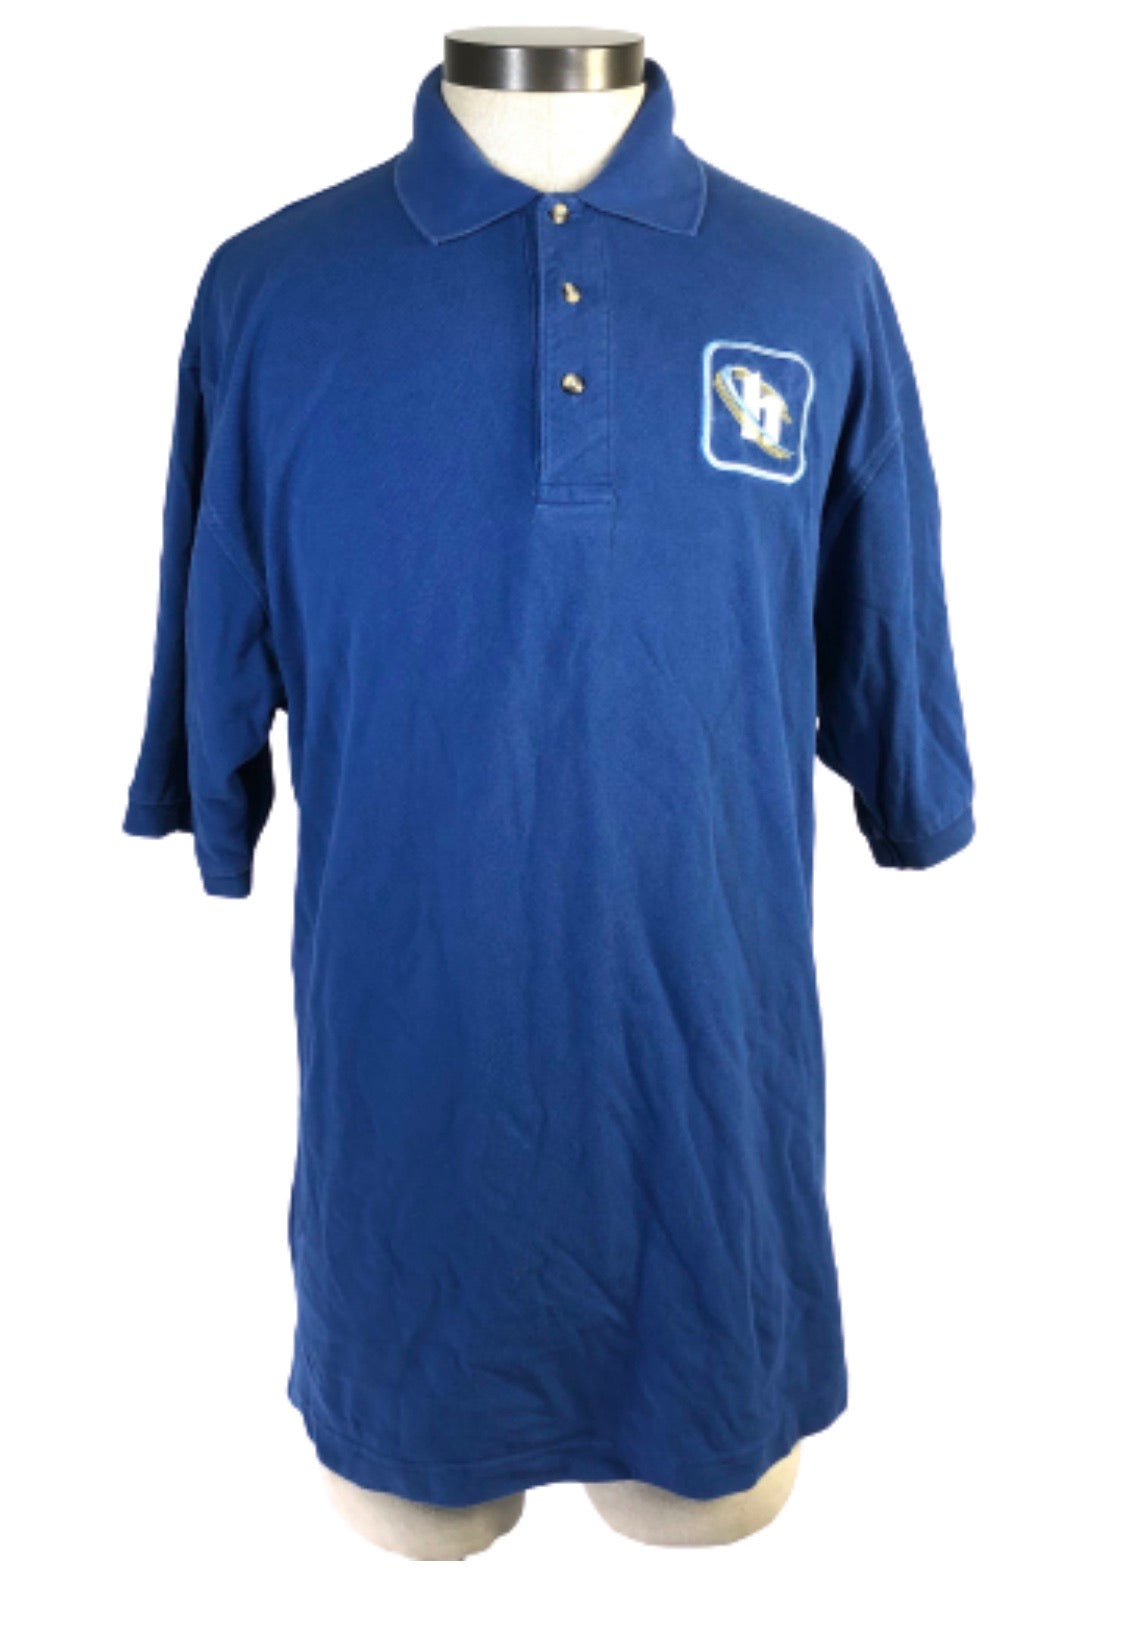 SILICON VALLEY: Blue Hooli Square Polo Shirt